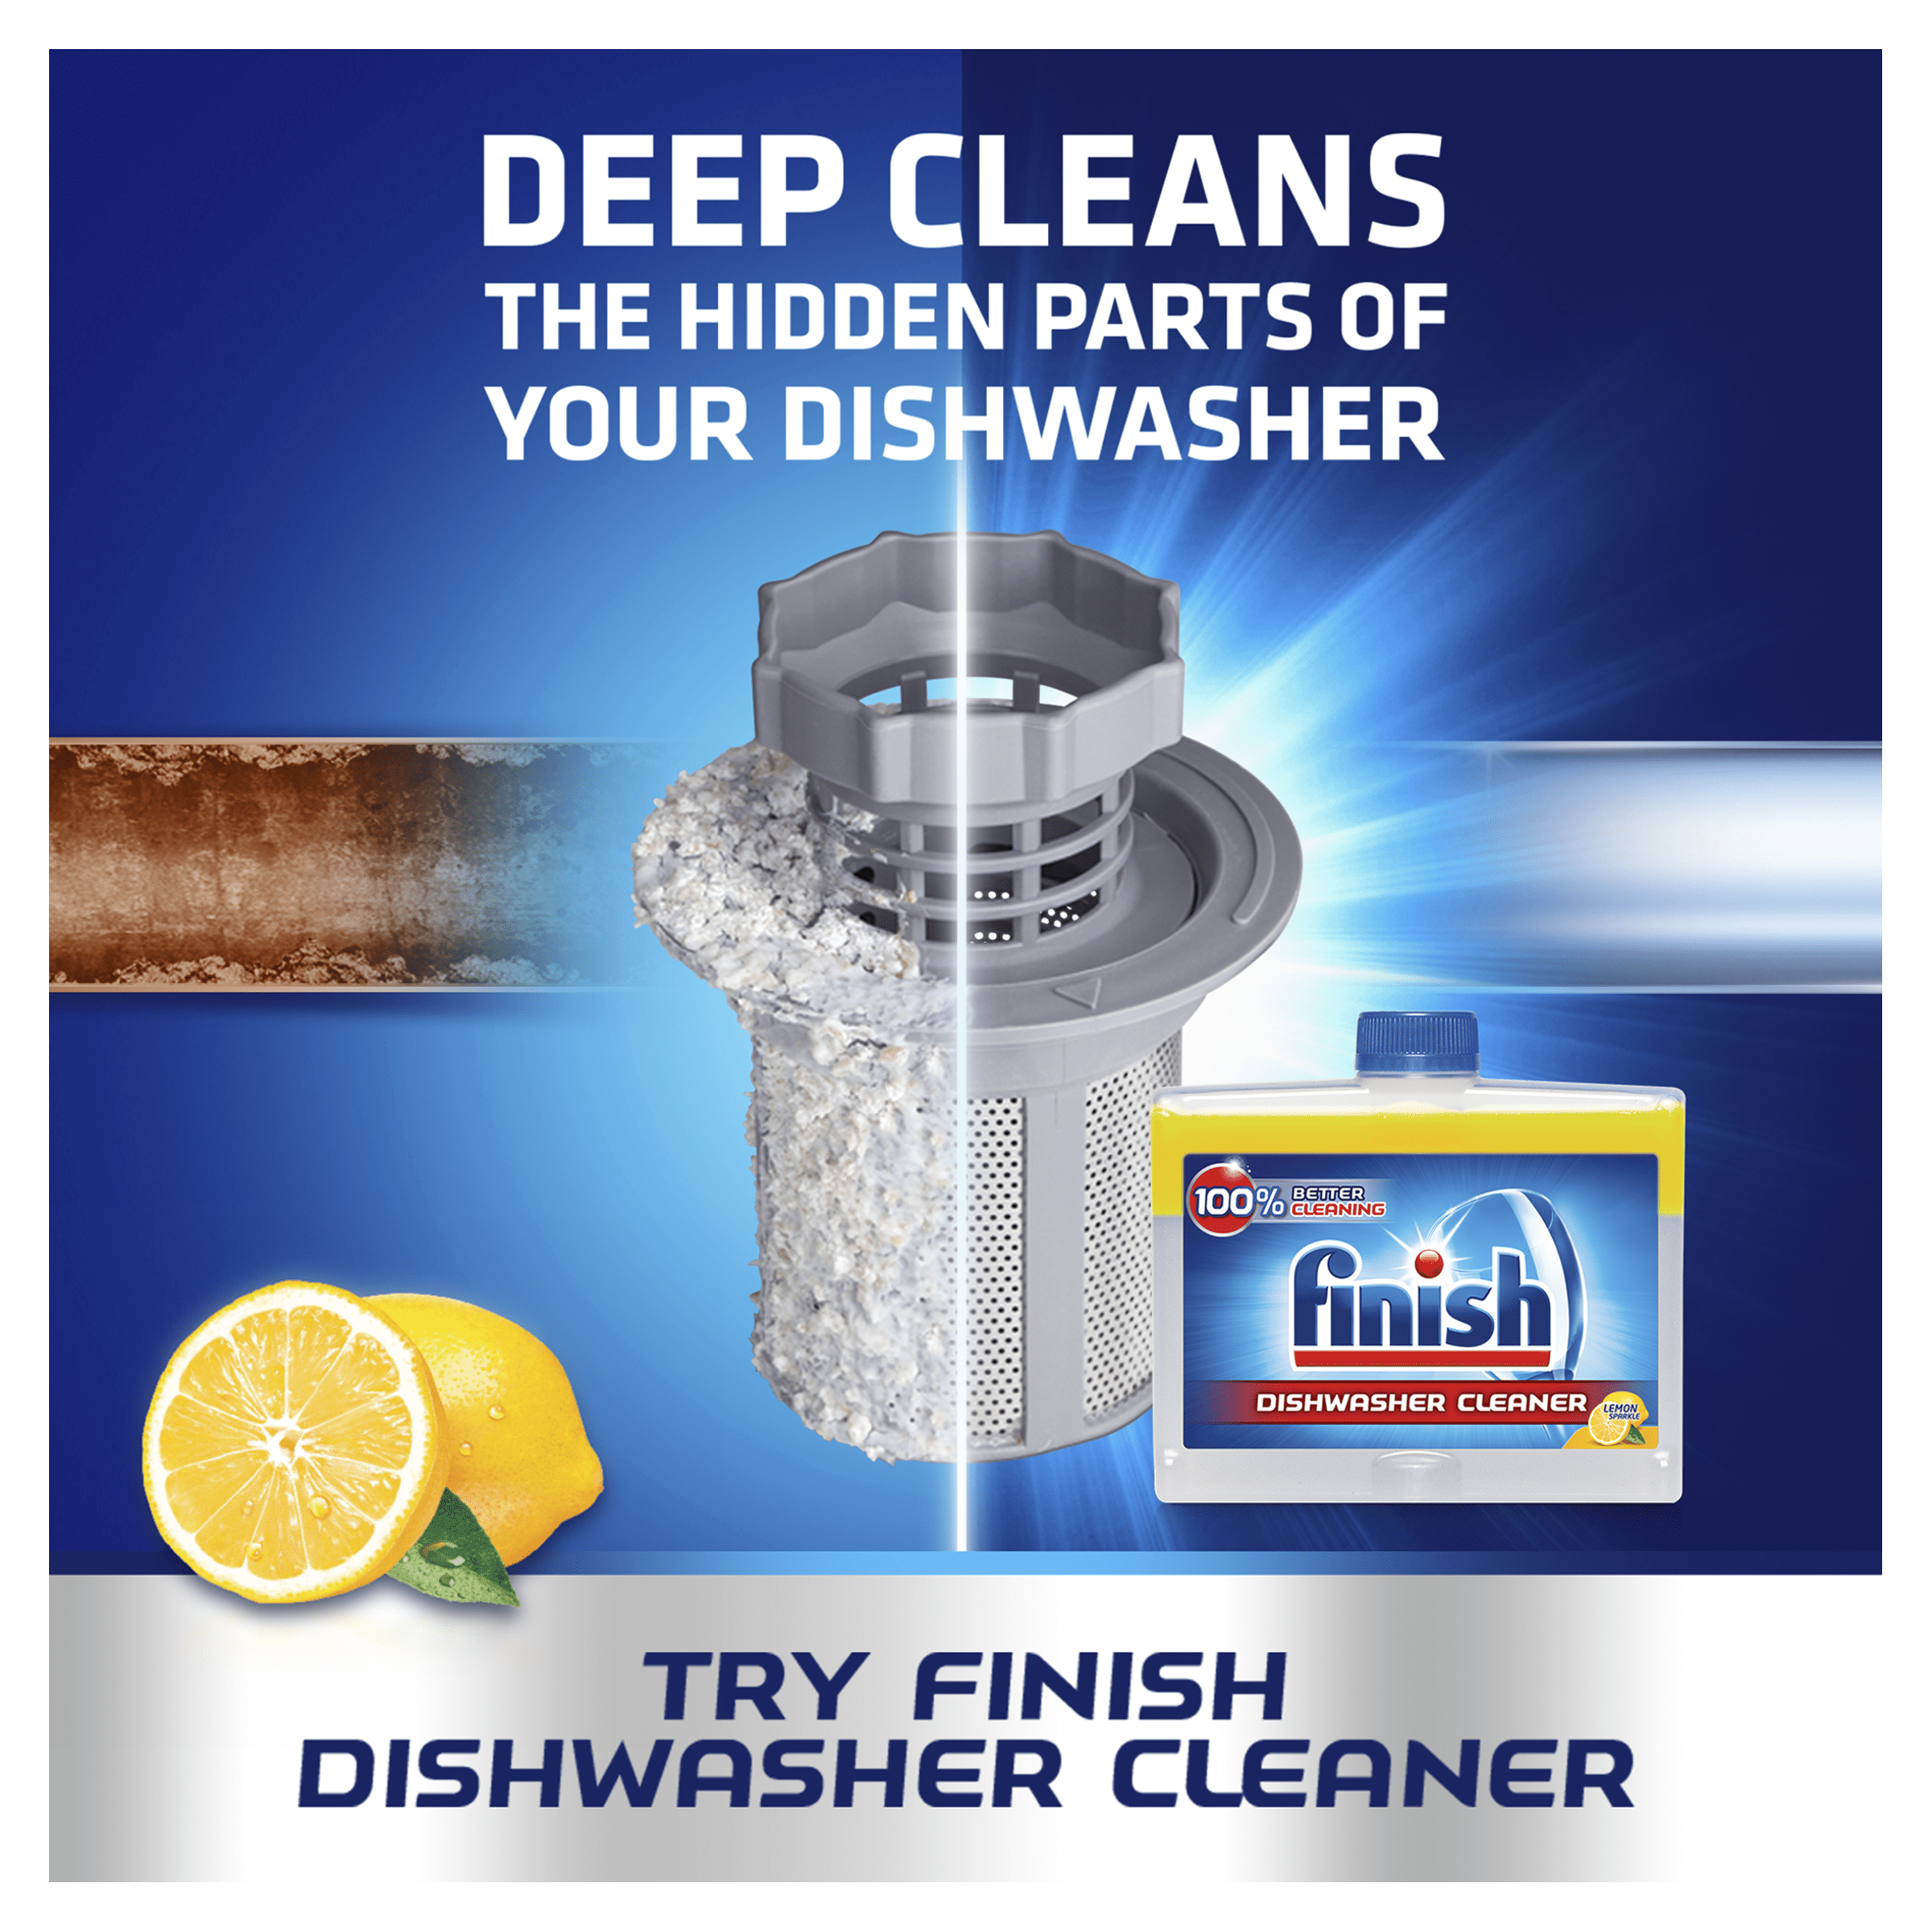 FINISH Dishwasher Cleaner Lemon clean